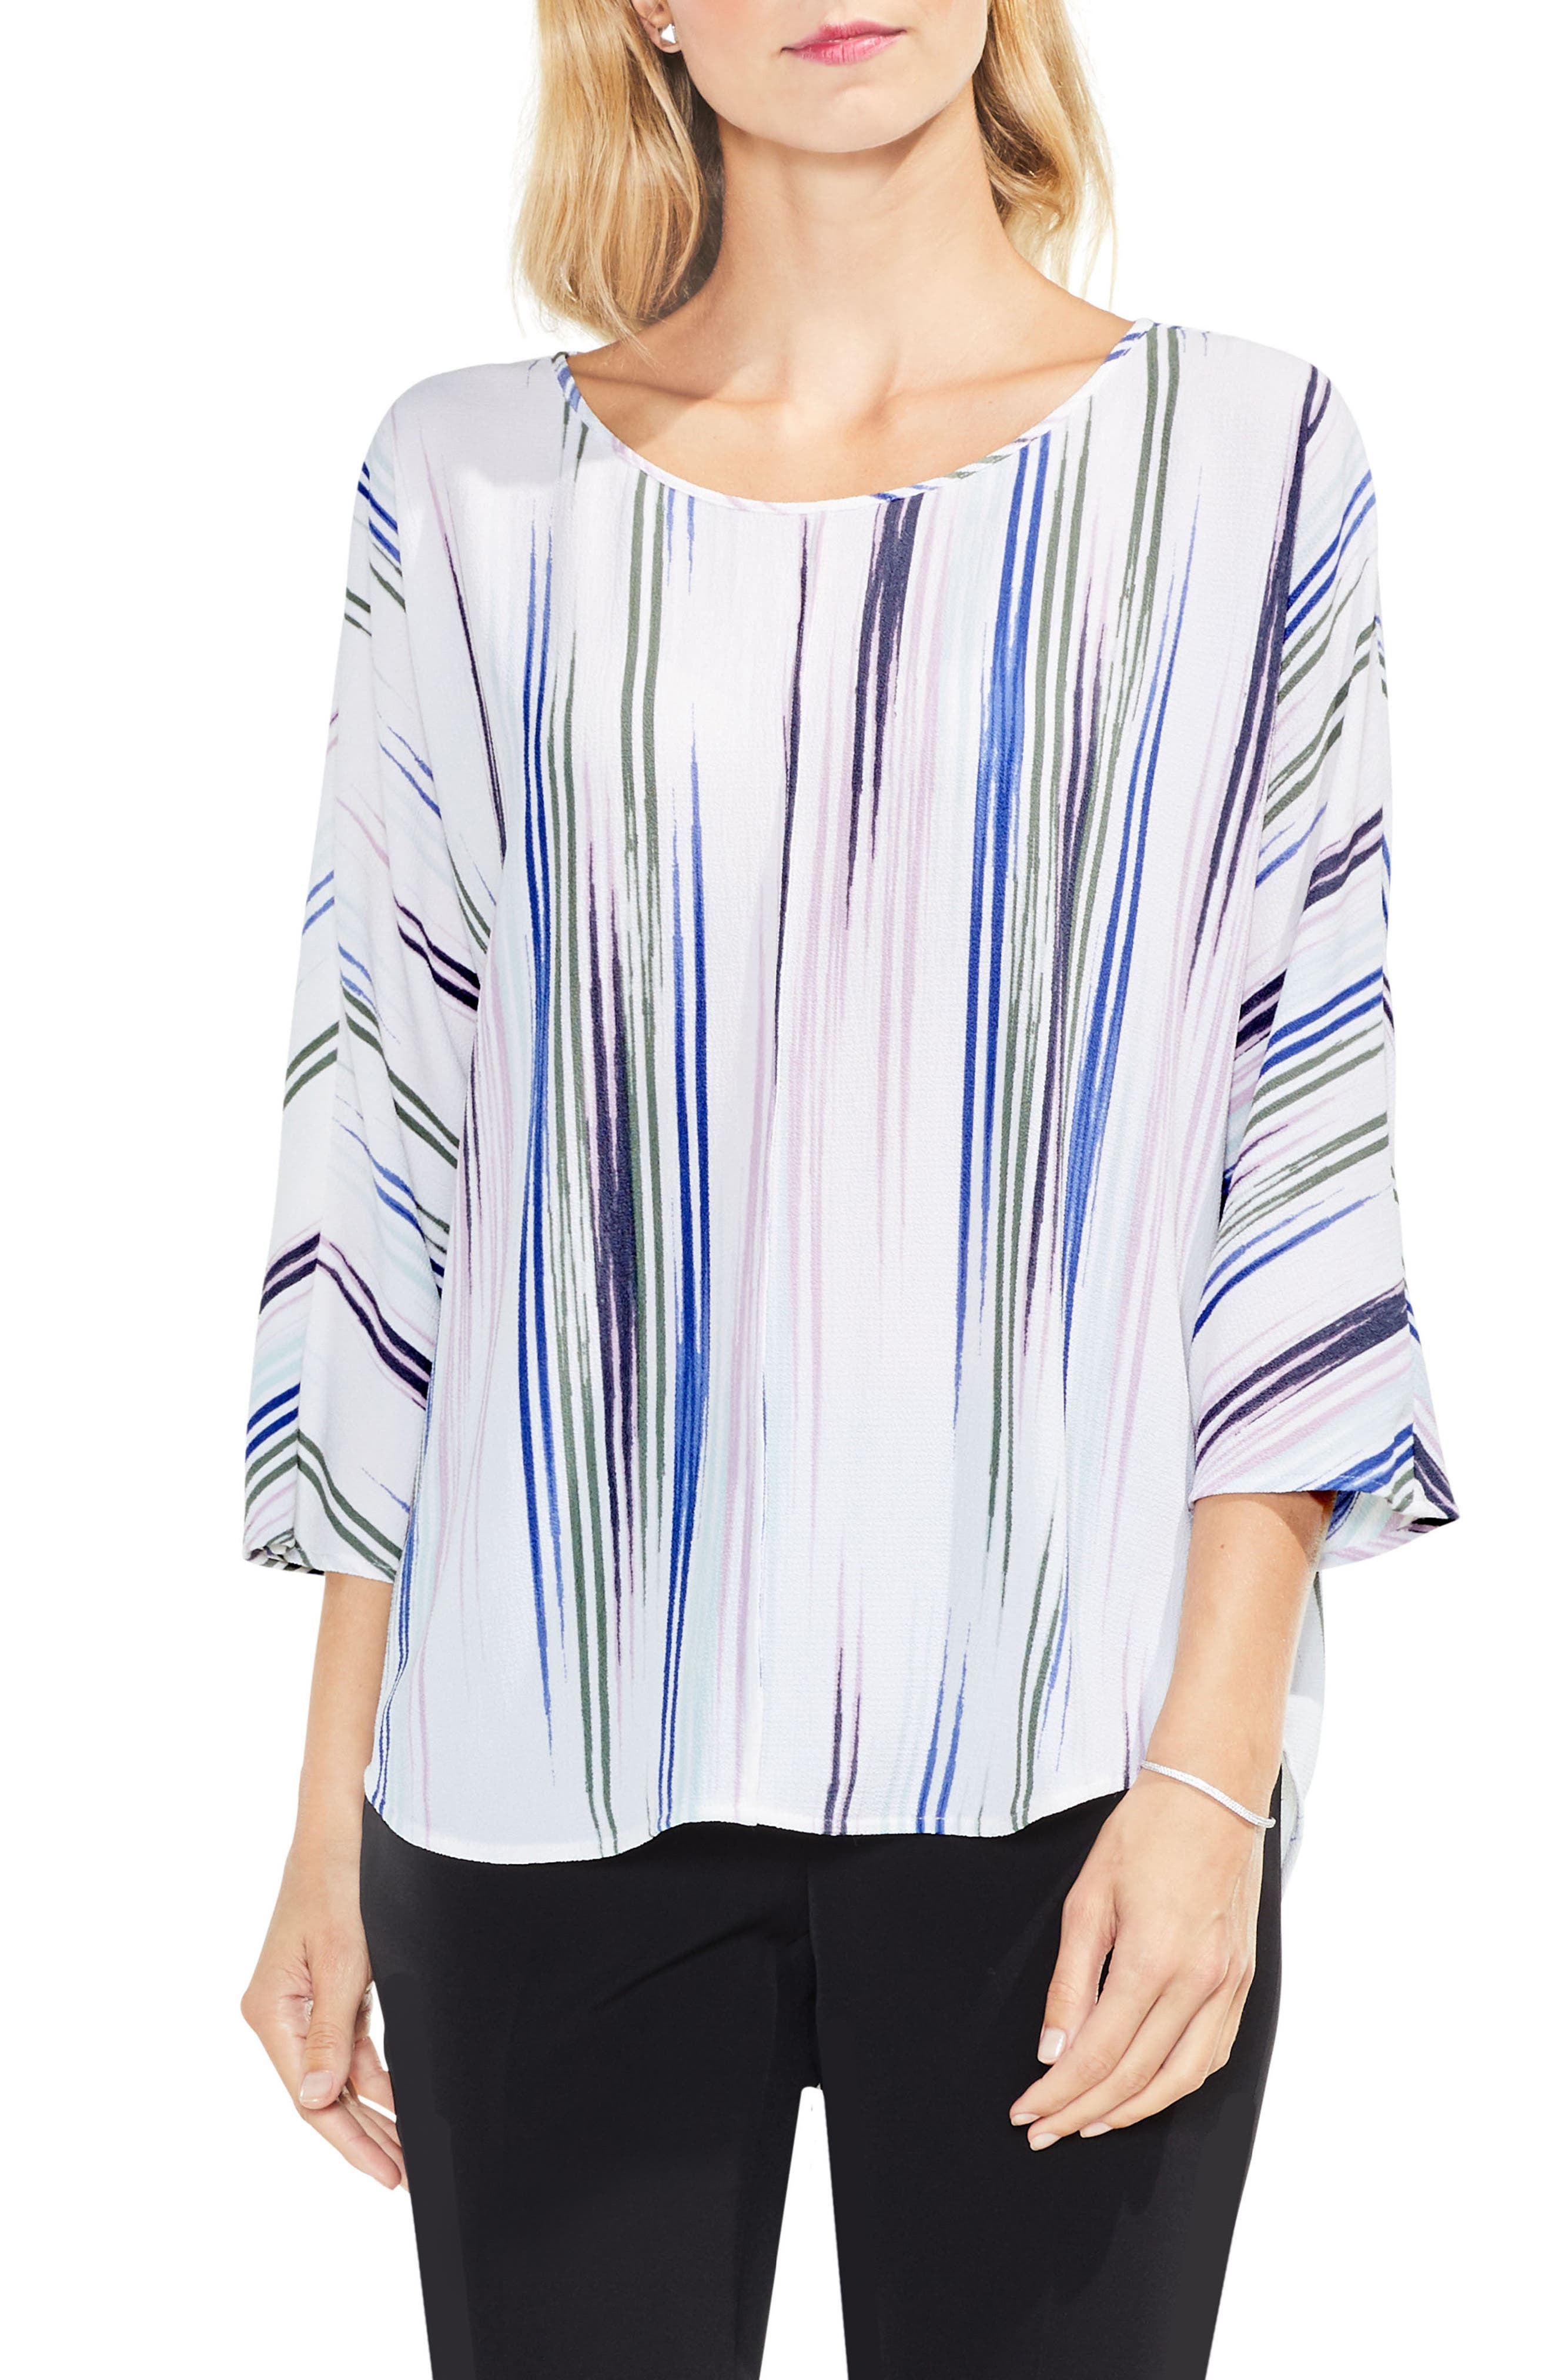 Main Image - Vince Camuto Colorful Peaks Top